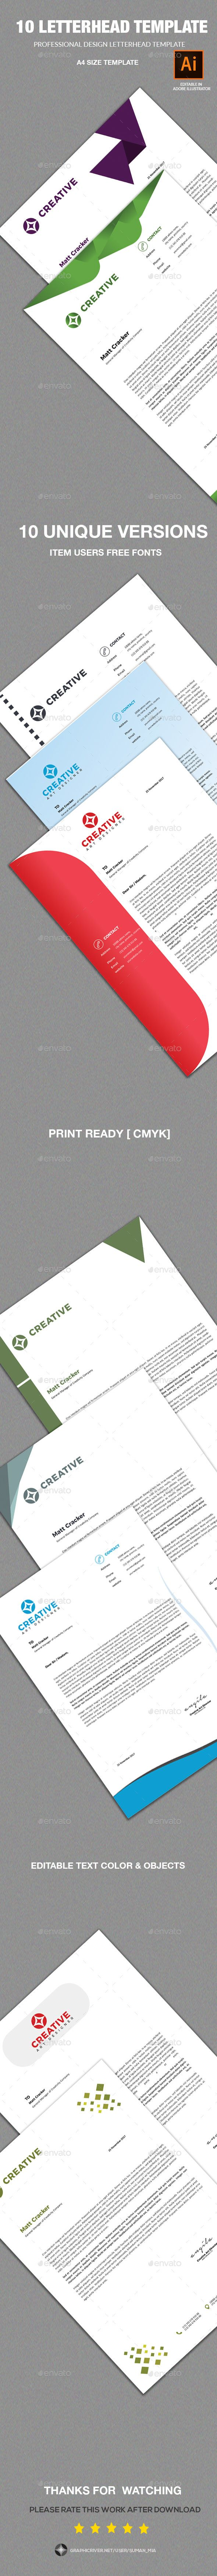 Letterhead template letterhead template template and letterhead letterhead template spiritdancerdesigns Image collections